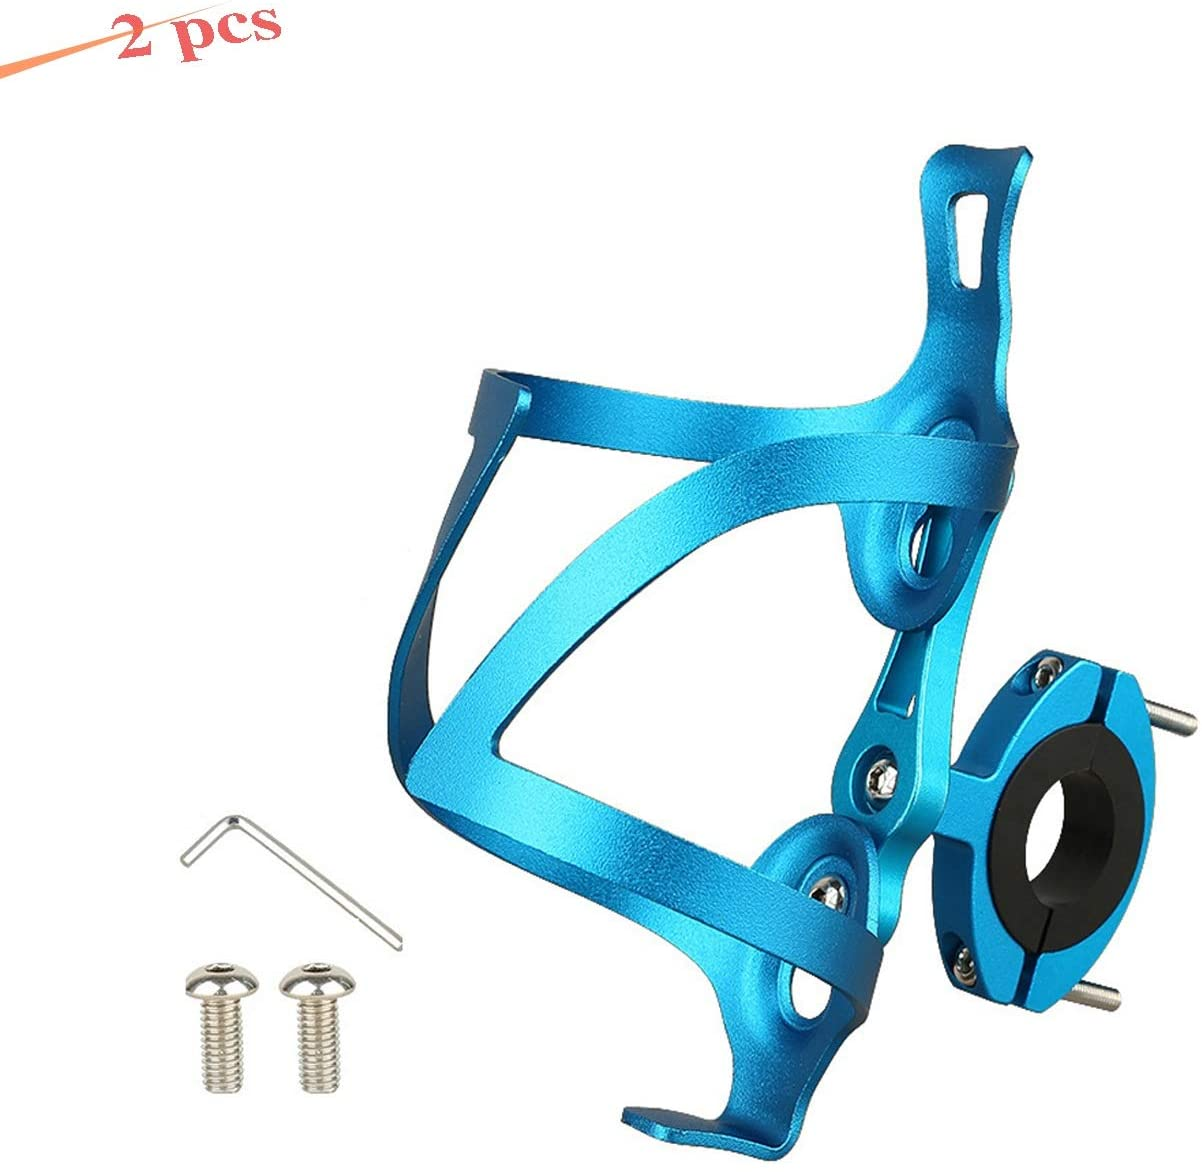 LOOZY Water Bottle Cages Lightweight Easy to Install,Secure Retention Bicycle Water Bottle Holder Lightweight Strong Aluminium Alloy for MTB Bike Stroller Motorcycle